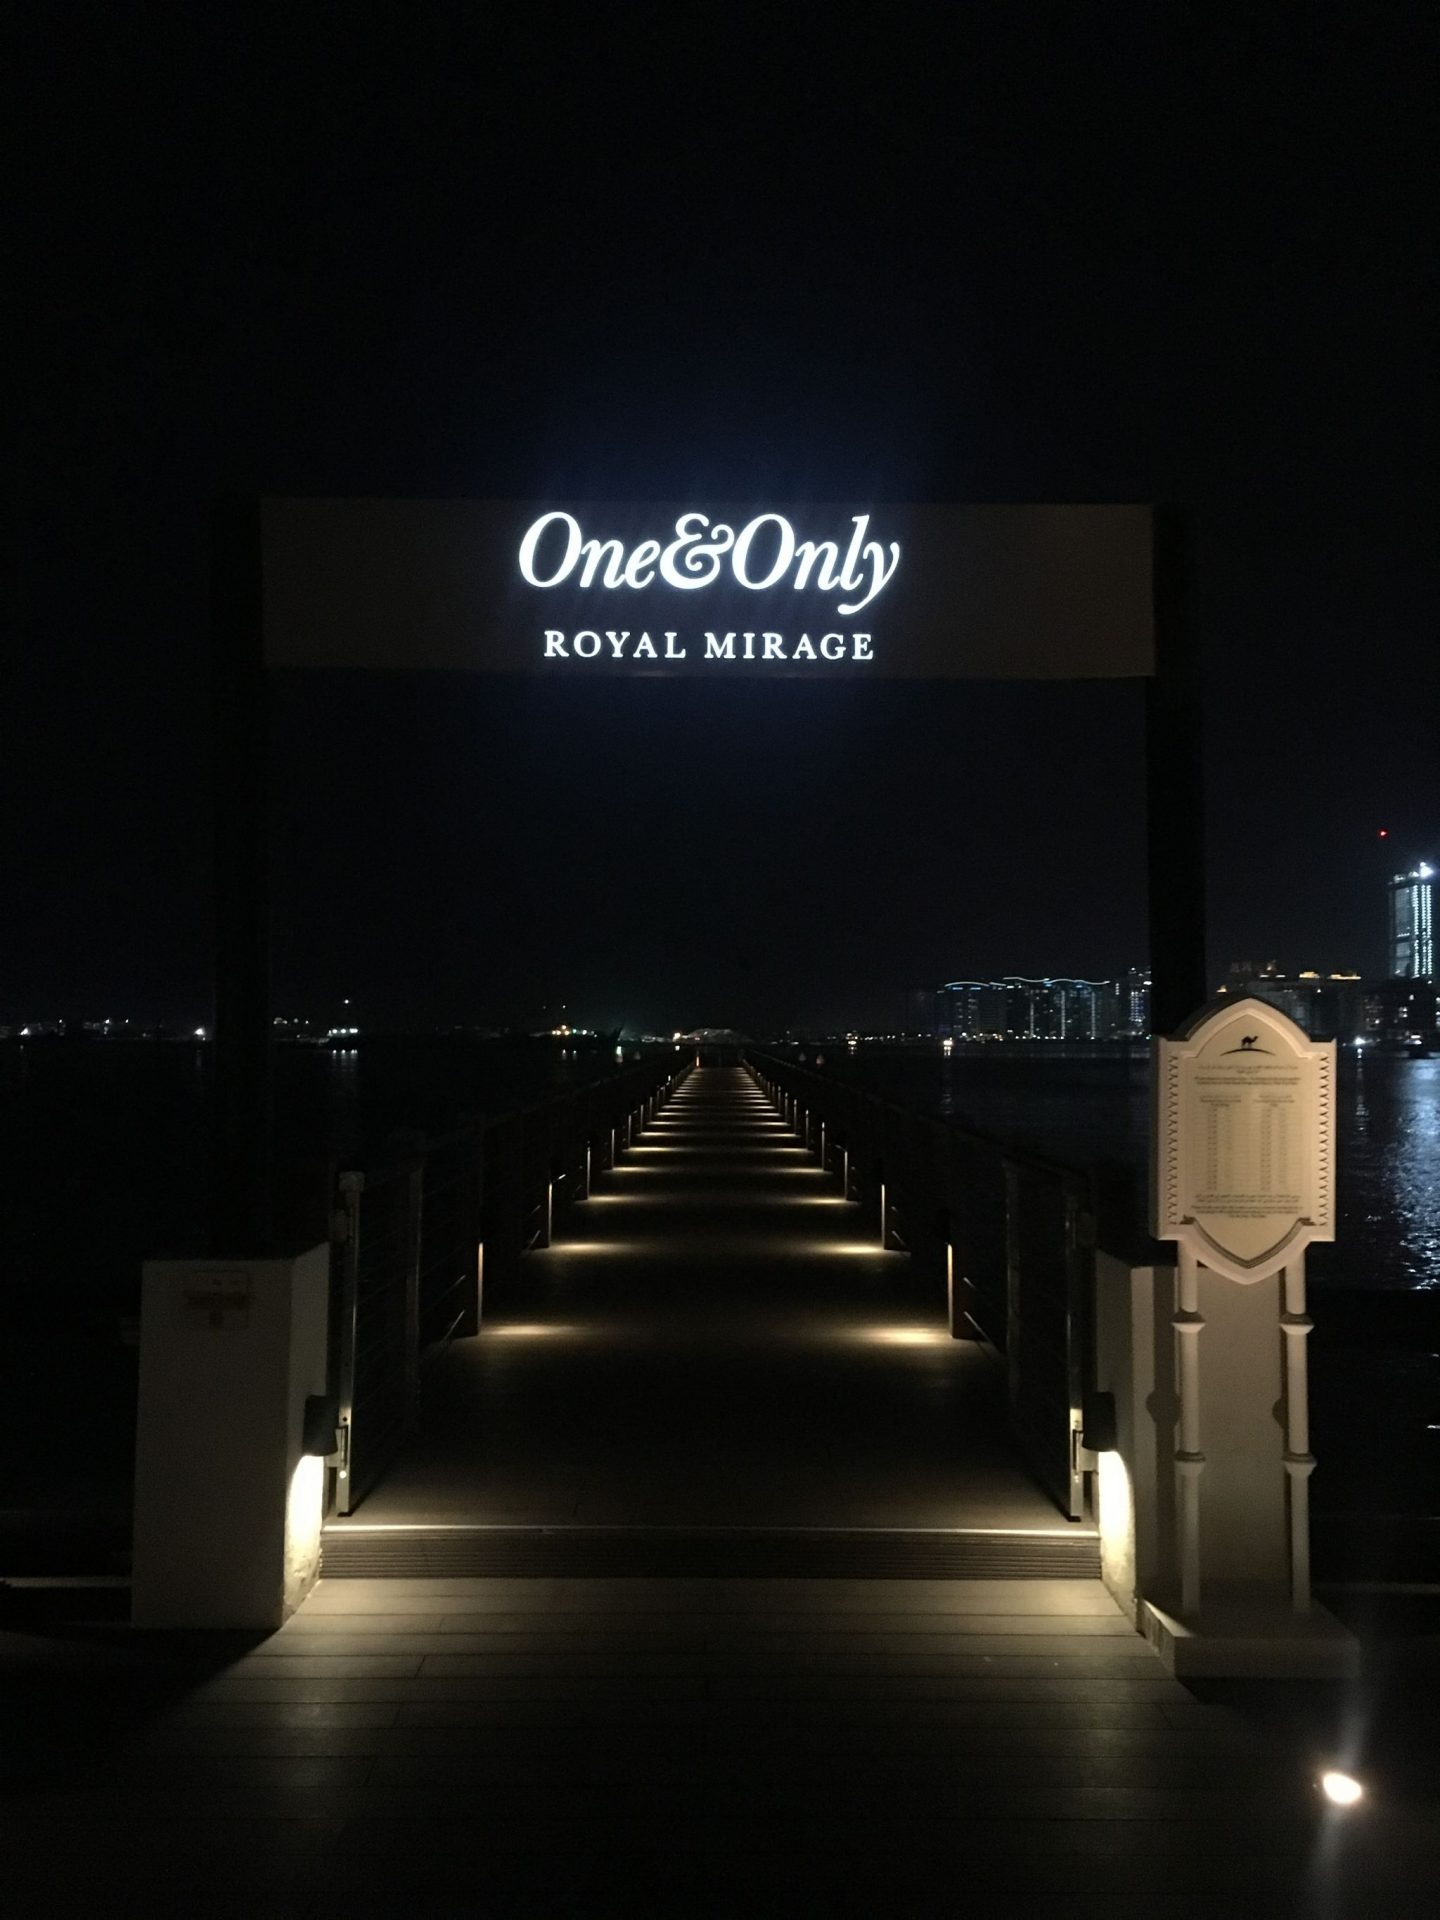 Jetty-One-and-Only-Royal-Mirage-Dubai